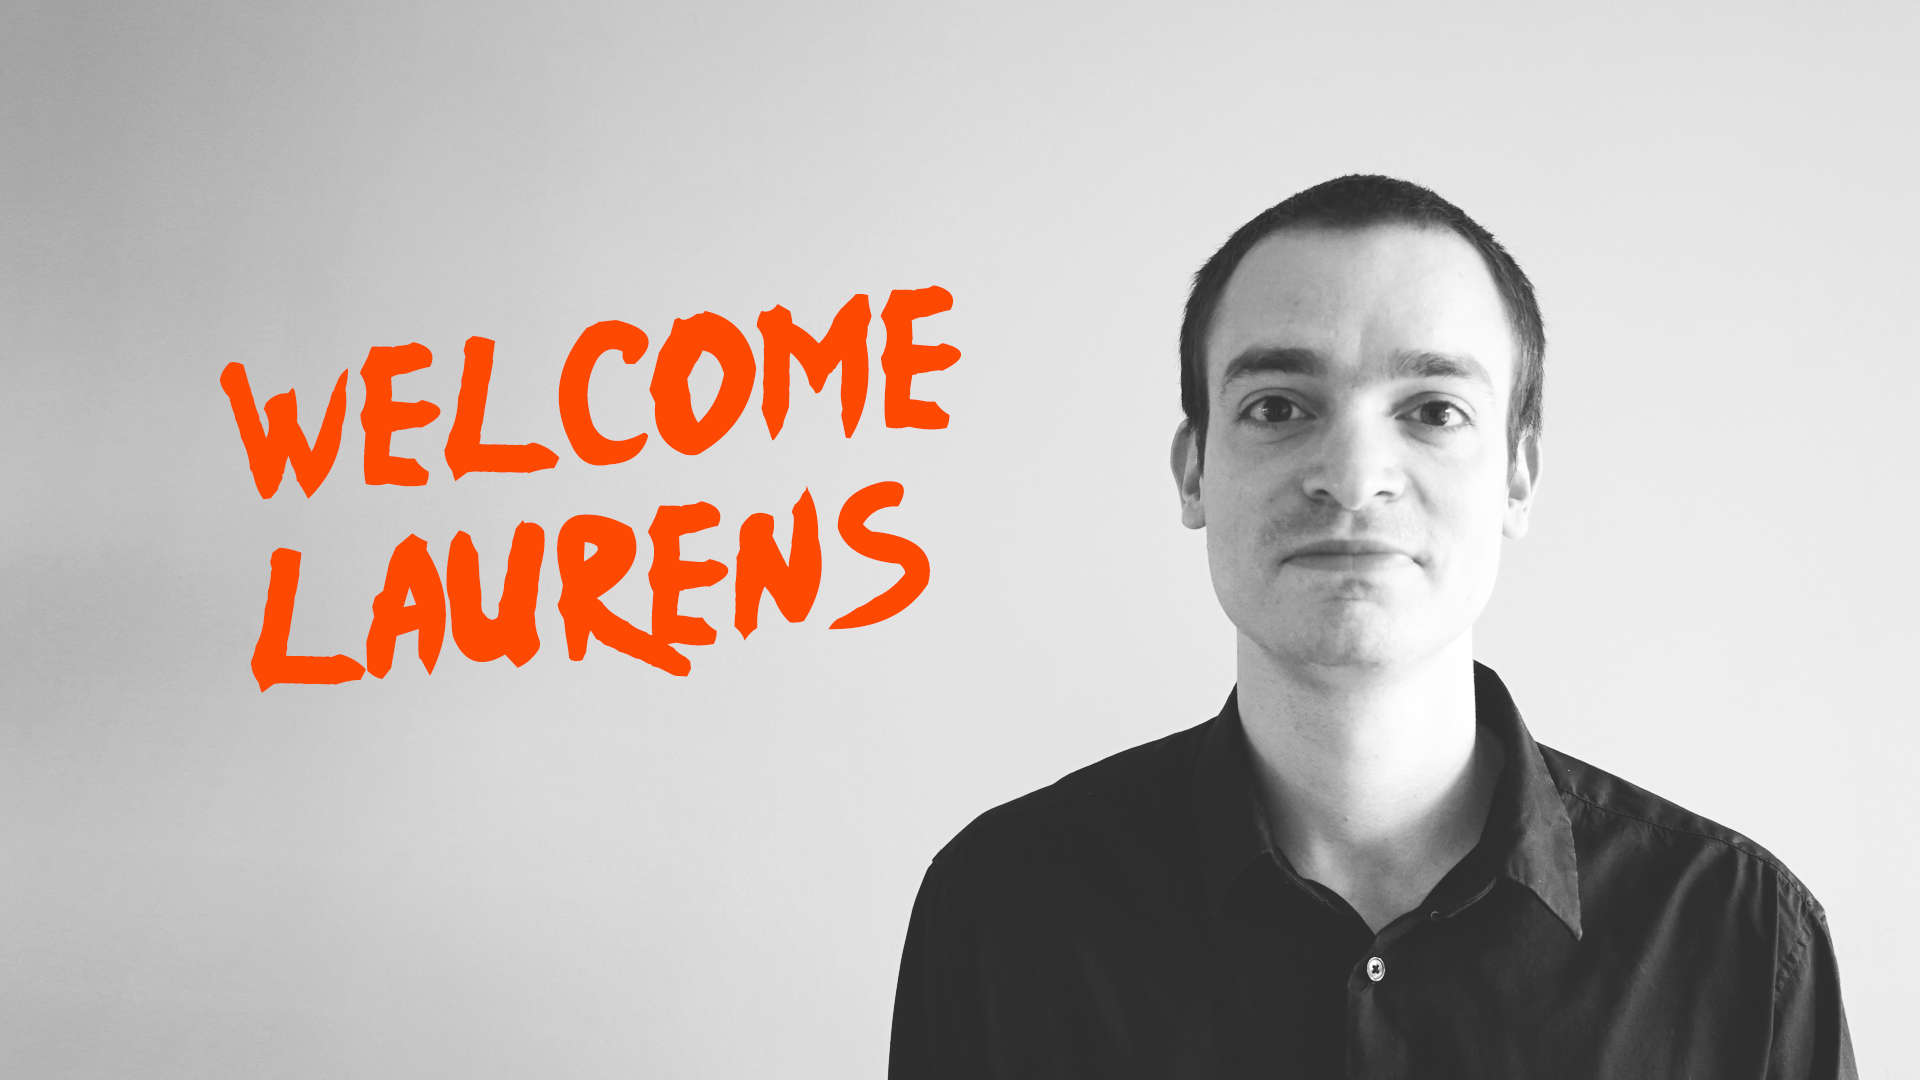 Meet Laurens, our new Web Developer!